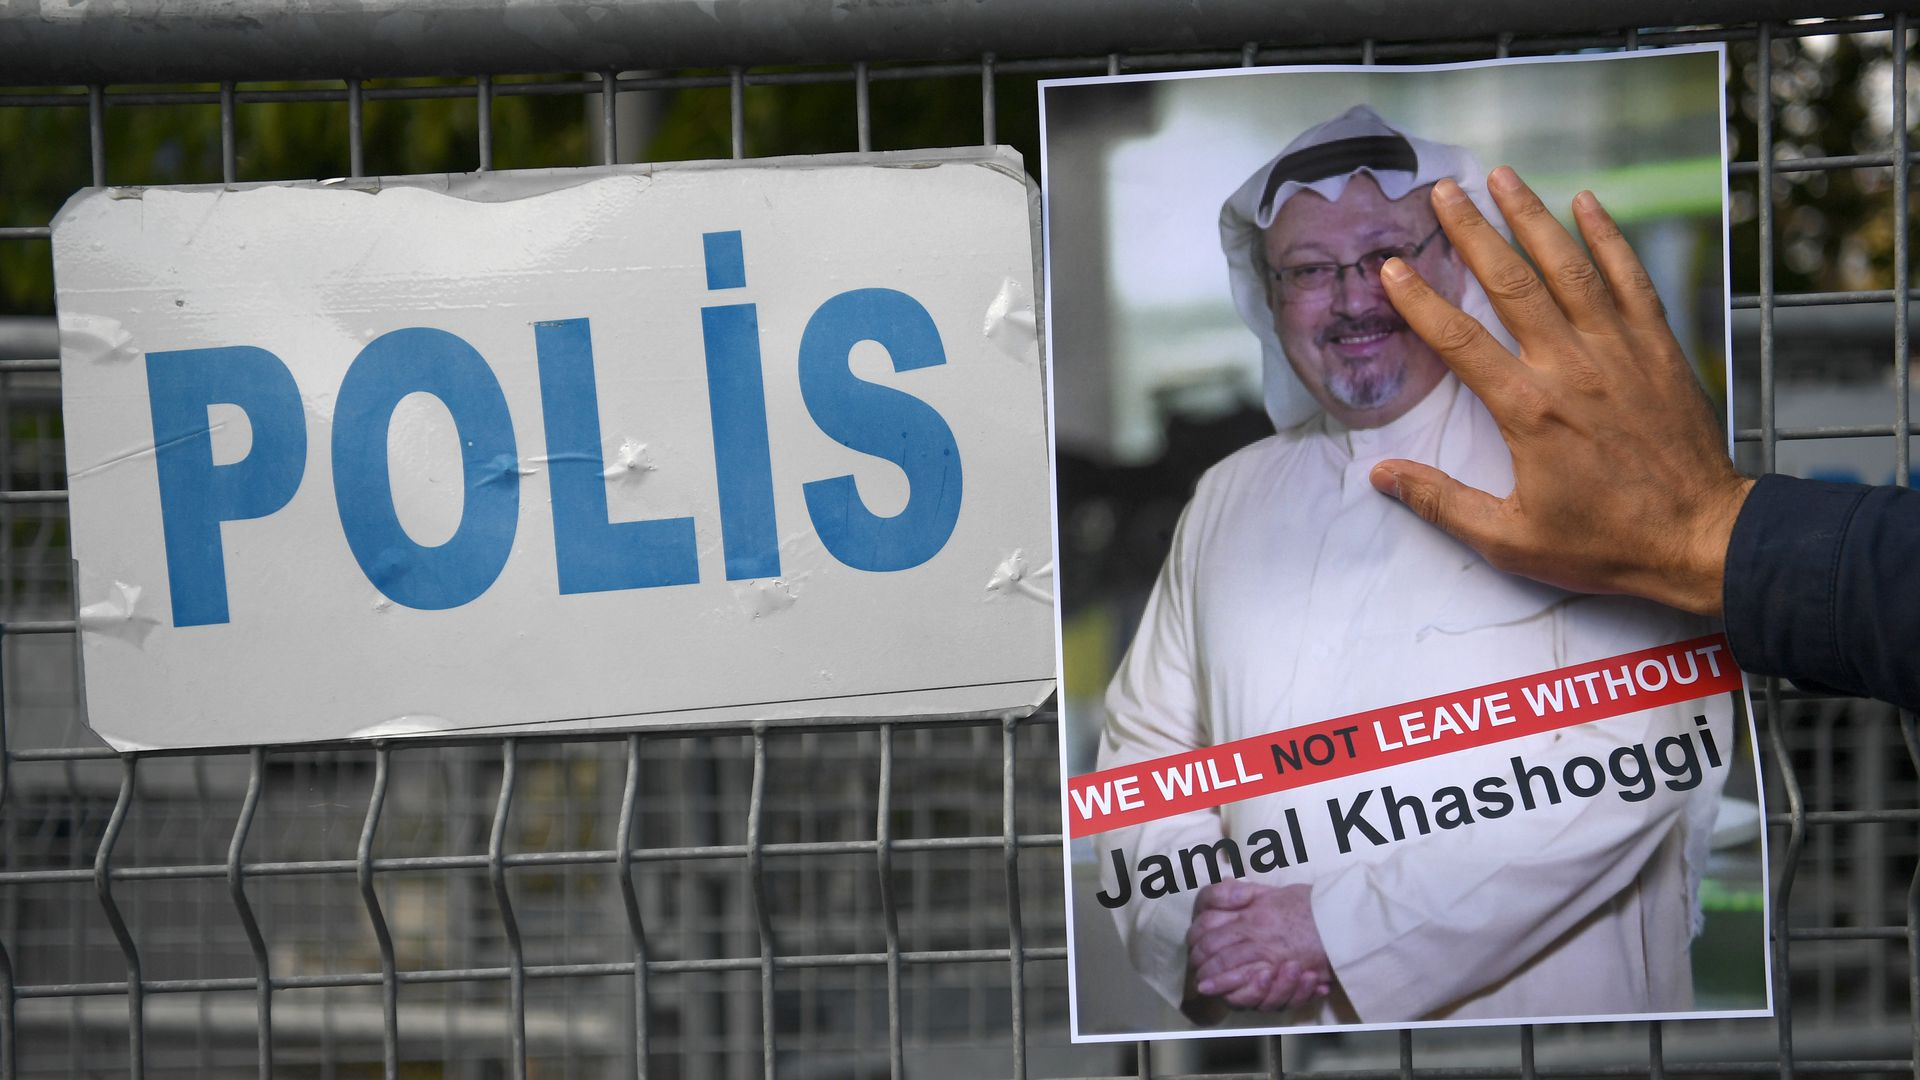 Missing poster of Jamal Khashoggi